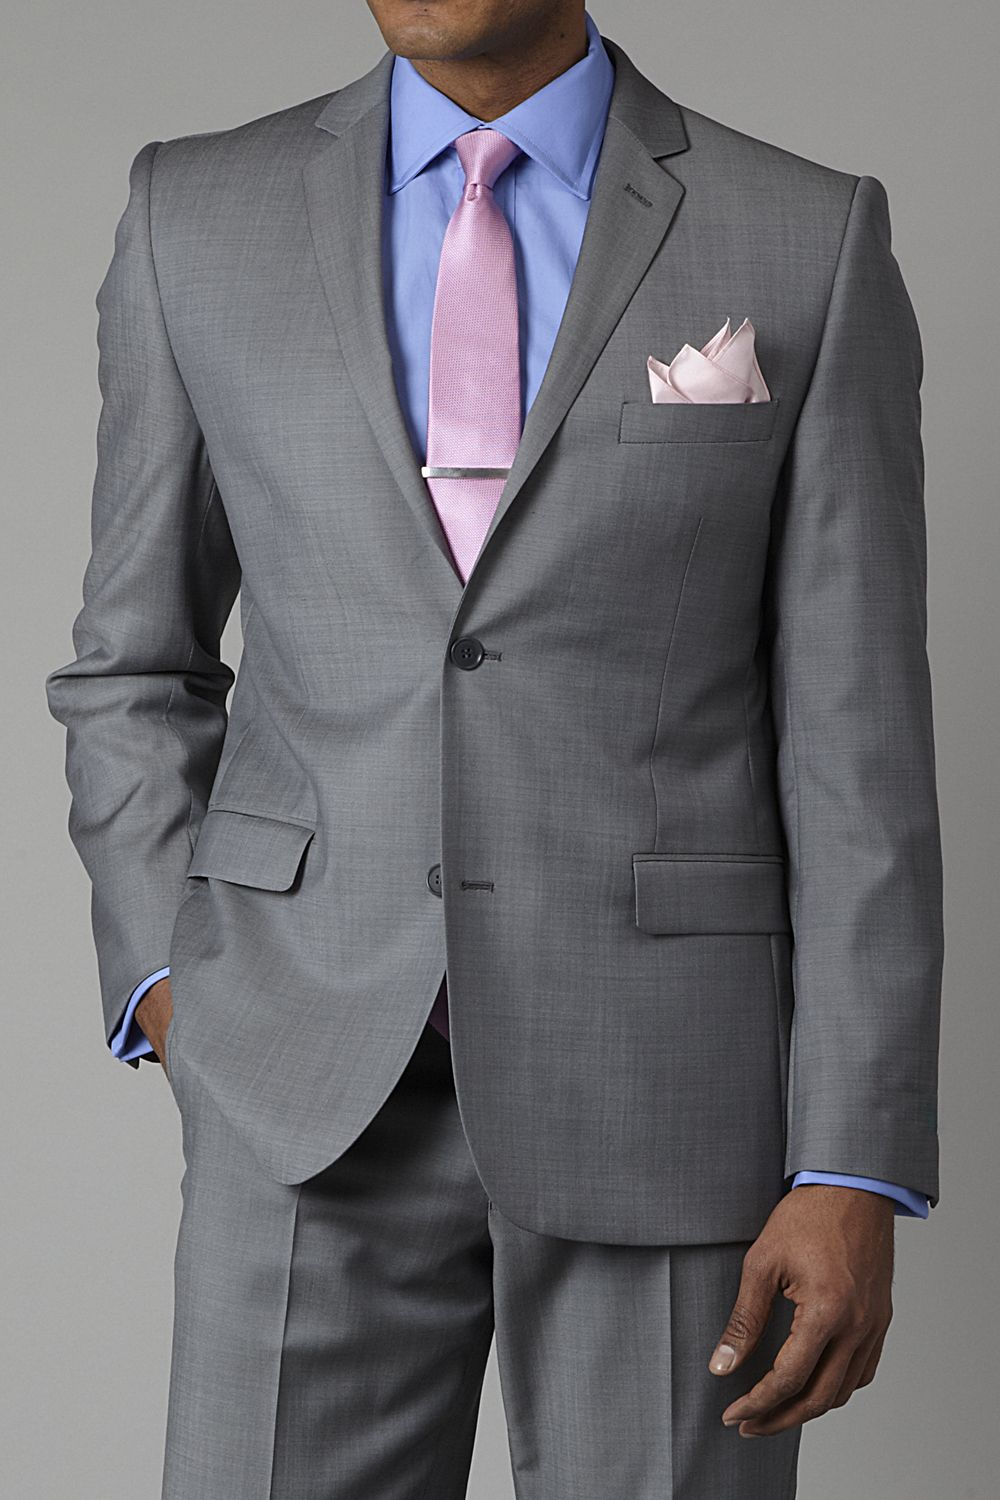 Grey Suit, Light Blue Shirt, Pink Tie | Wedding Suits ...